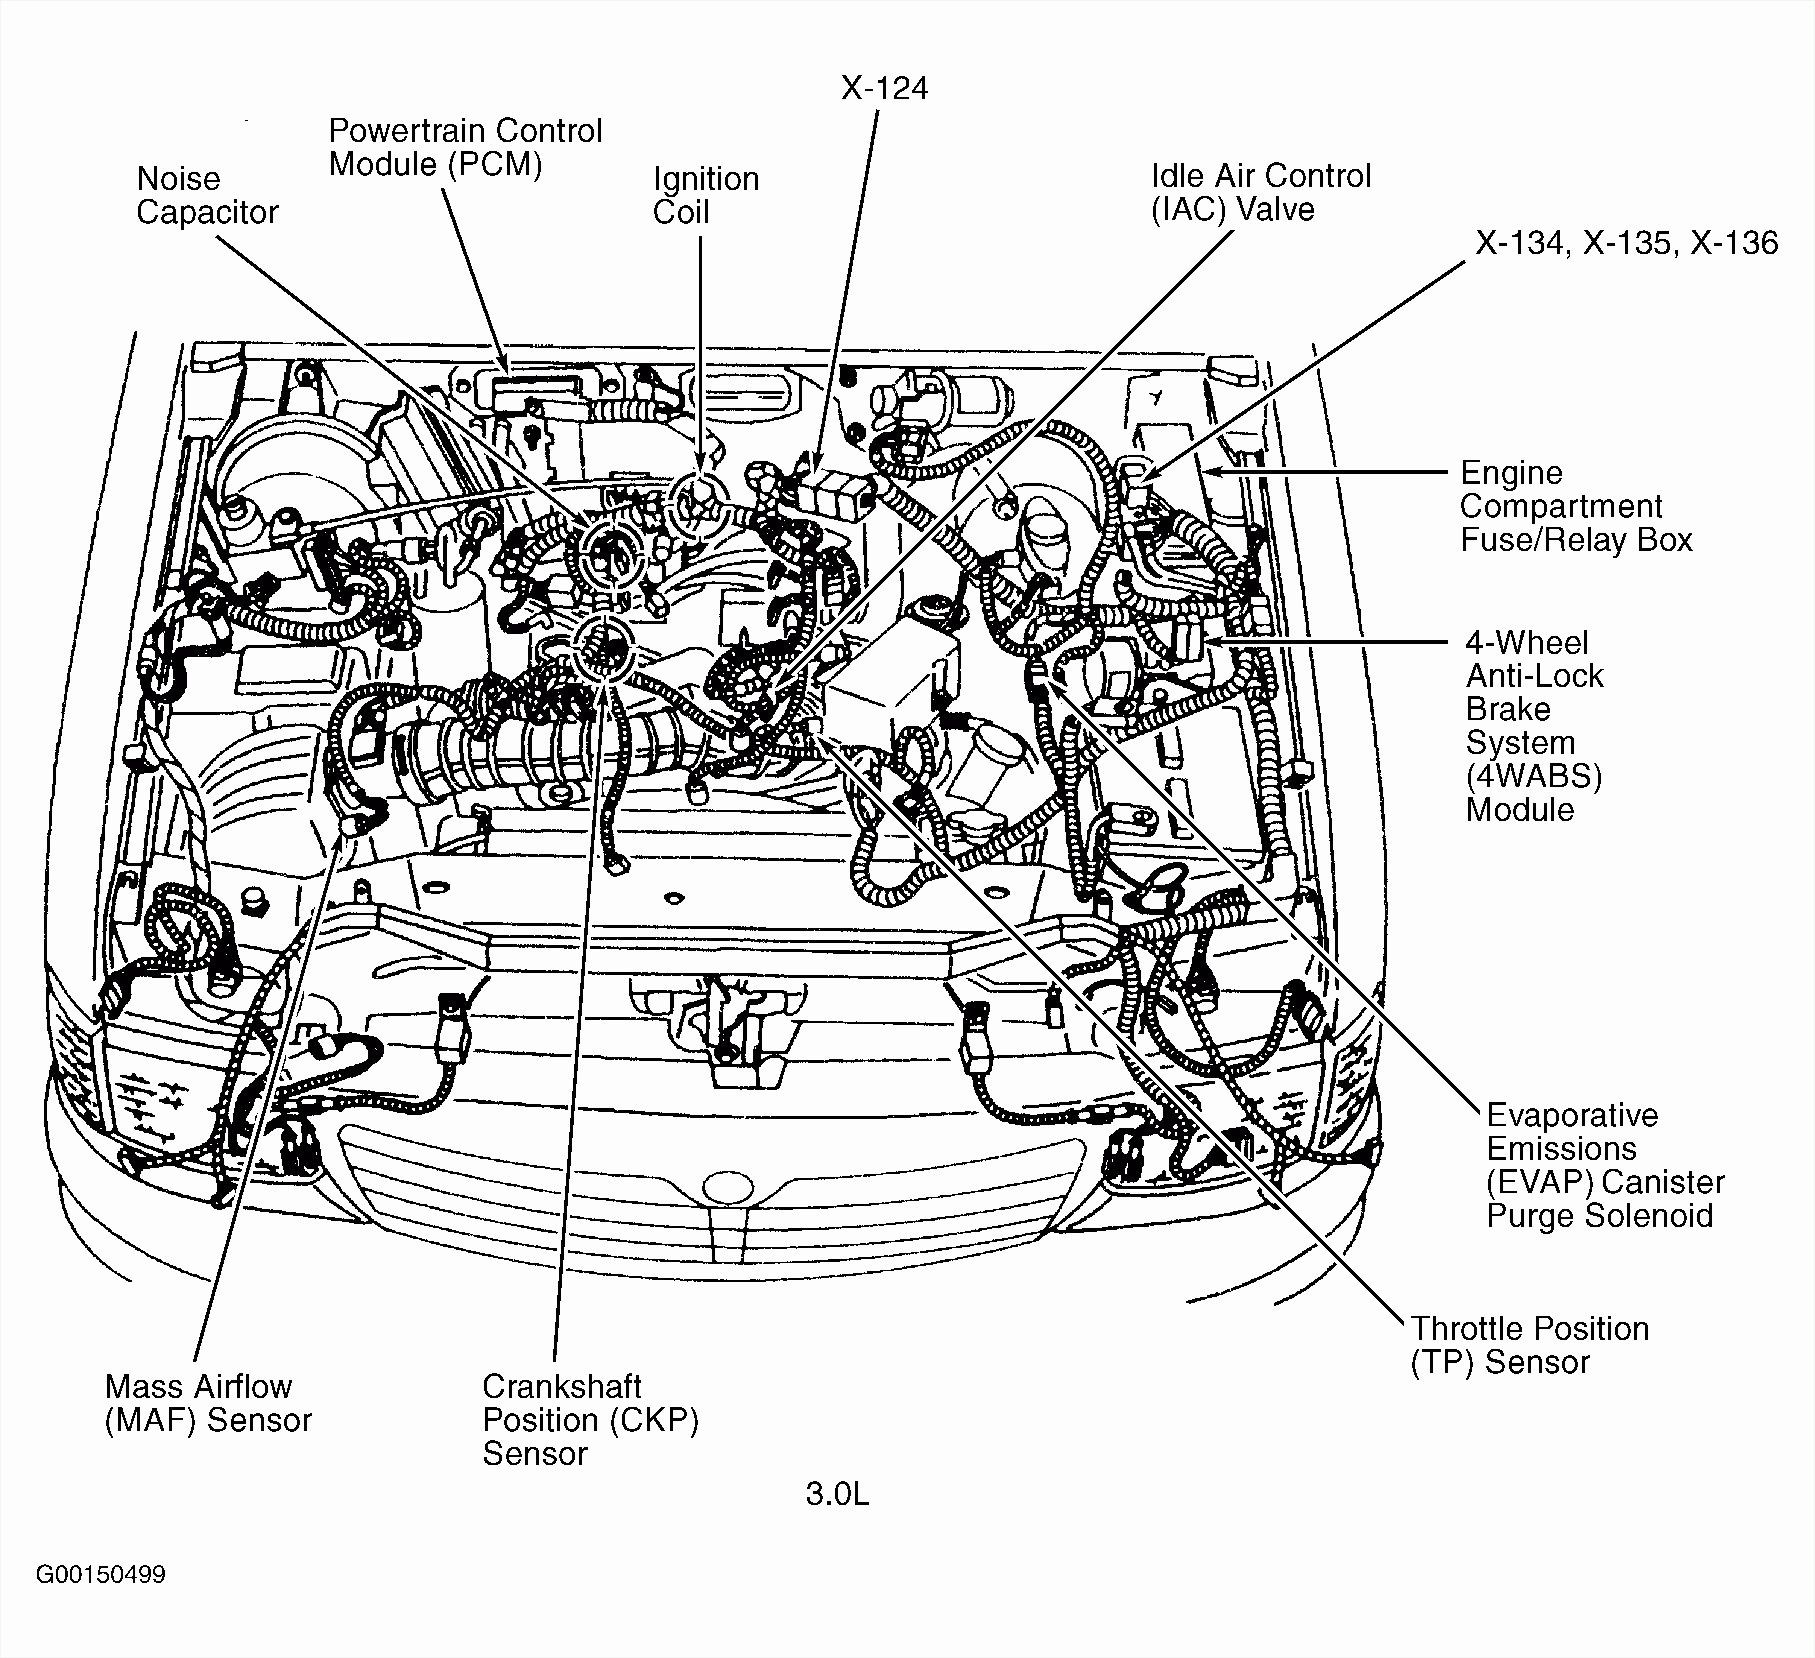 5 7 Vortec Engine Diagram 2 1999 5 7 Vortec Engine Diagram Wiring Diagram toolbox Of 5 7 Vortec Engine Diagram 2 1999 5 7 Vortec Engine Diagram Wiring Diagram toolbox